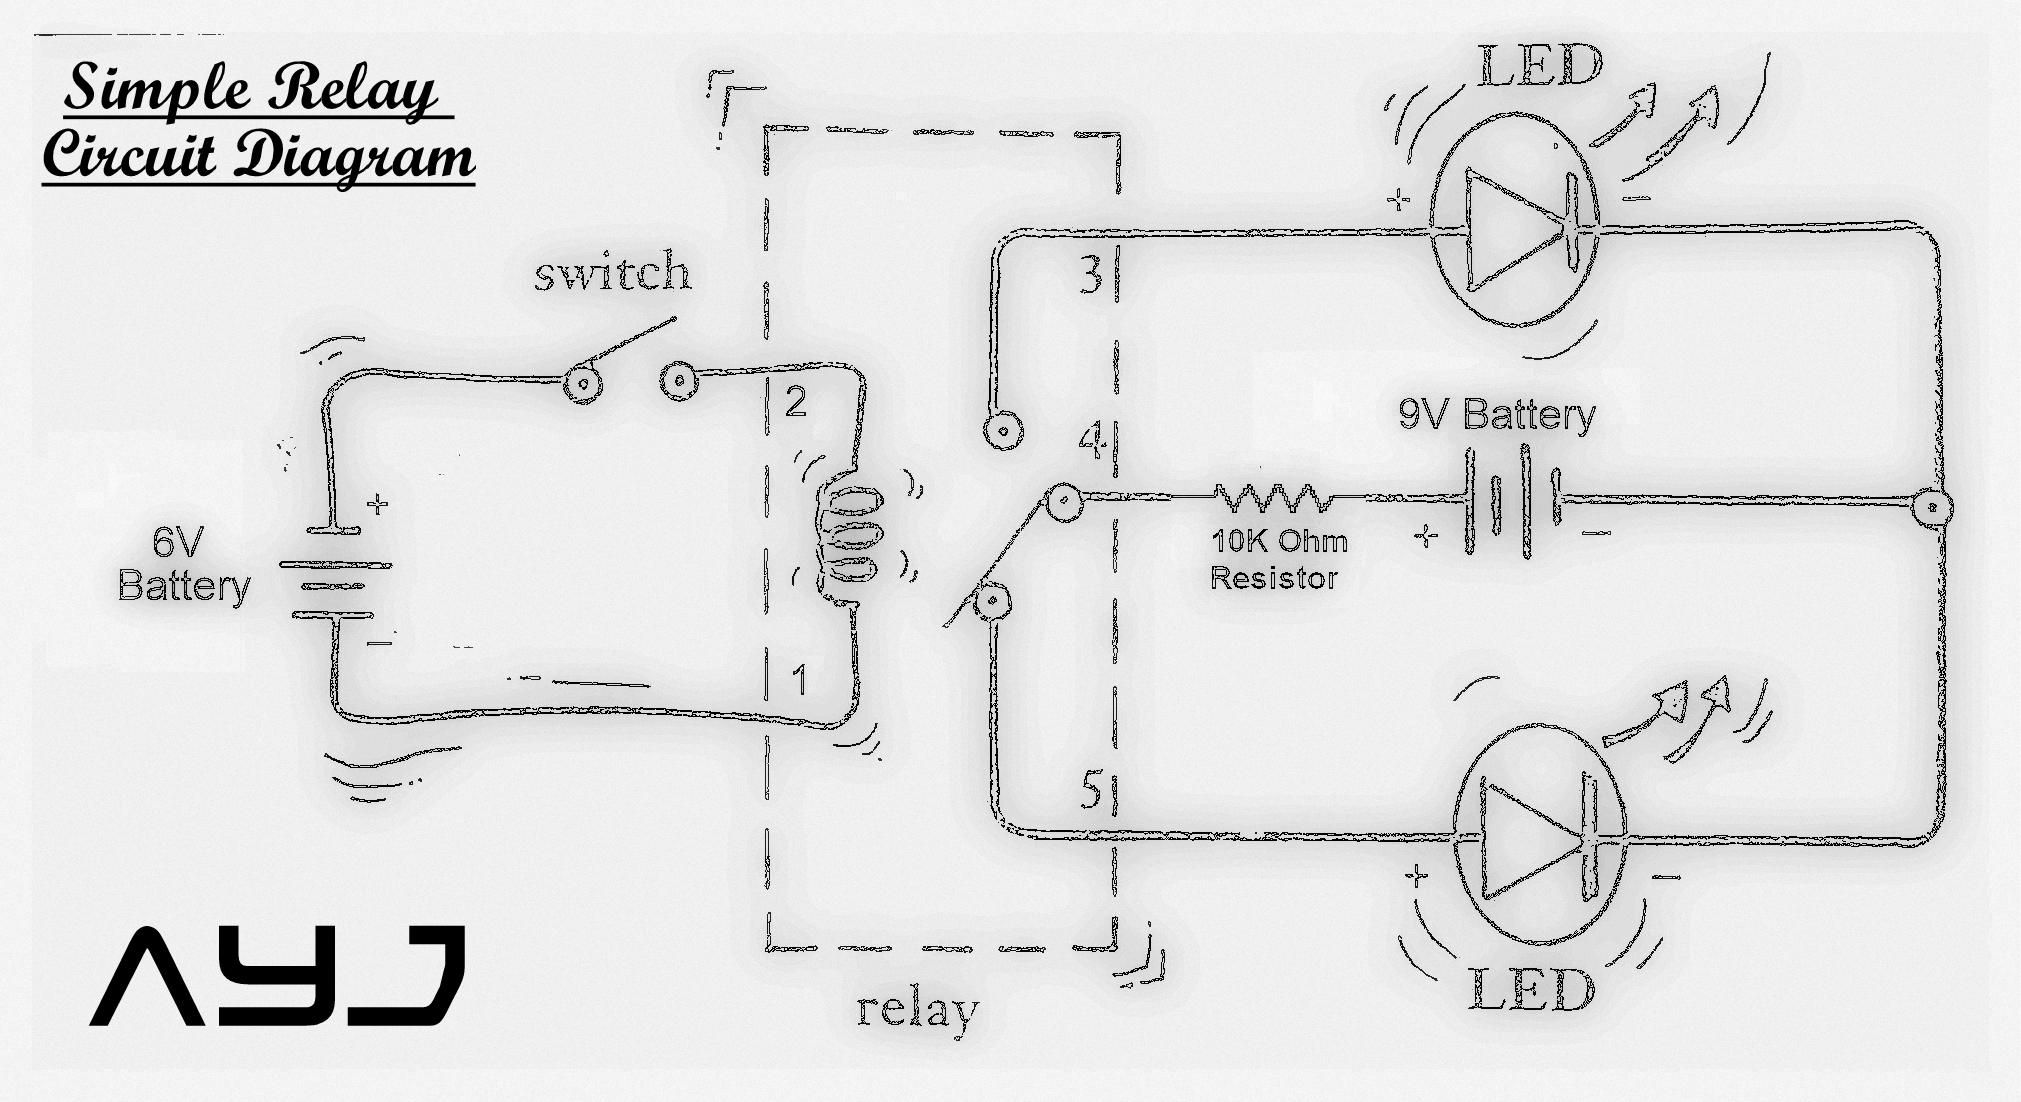 Simple Relay Circuit Circuit Diagram Circuit Diagram Circuit Diagram